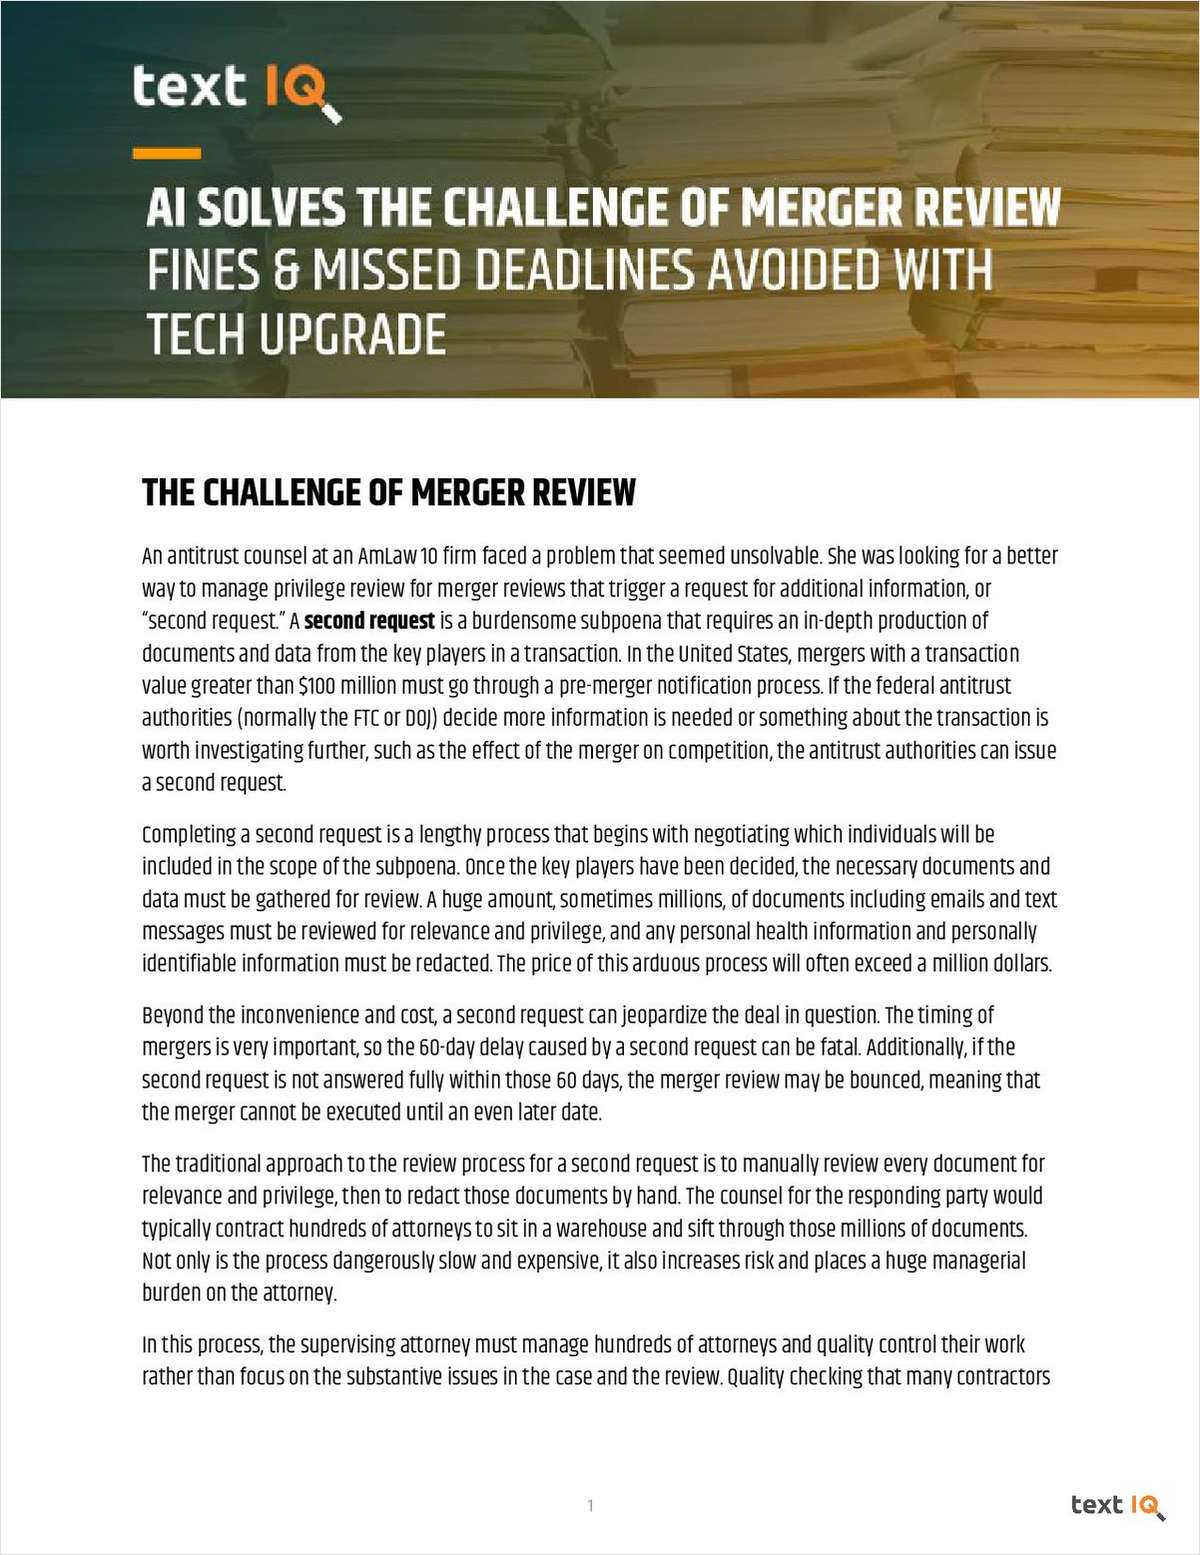 AI Solves the Challenge of Merger Review: Fines and Missed Deadlines Avoided With Tech Upgrade